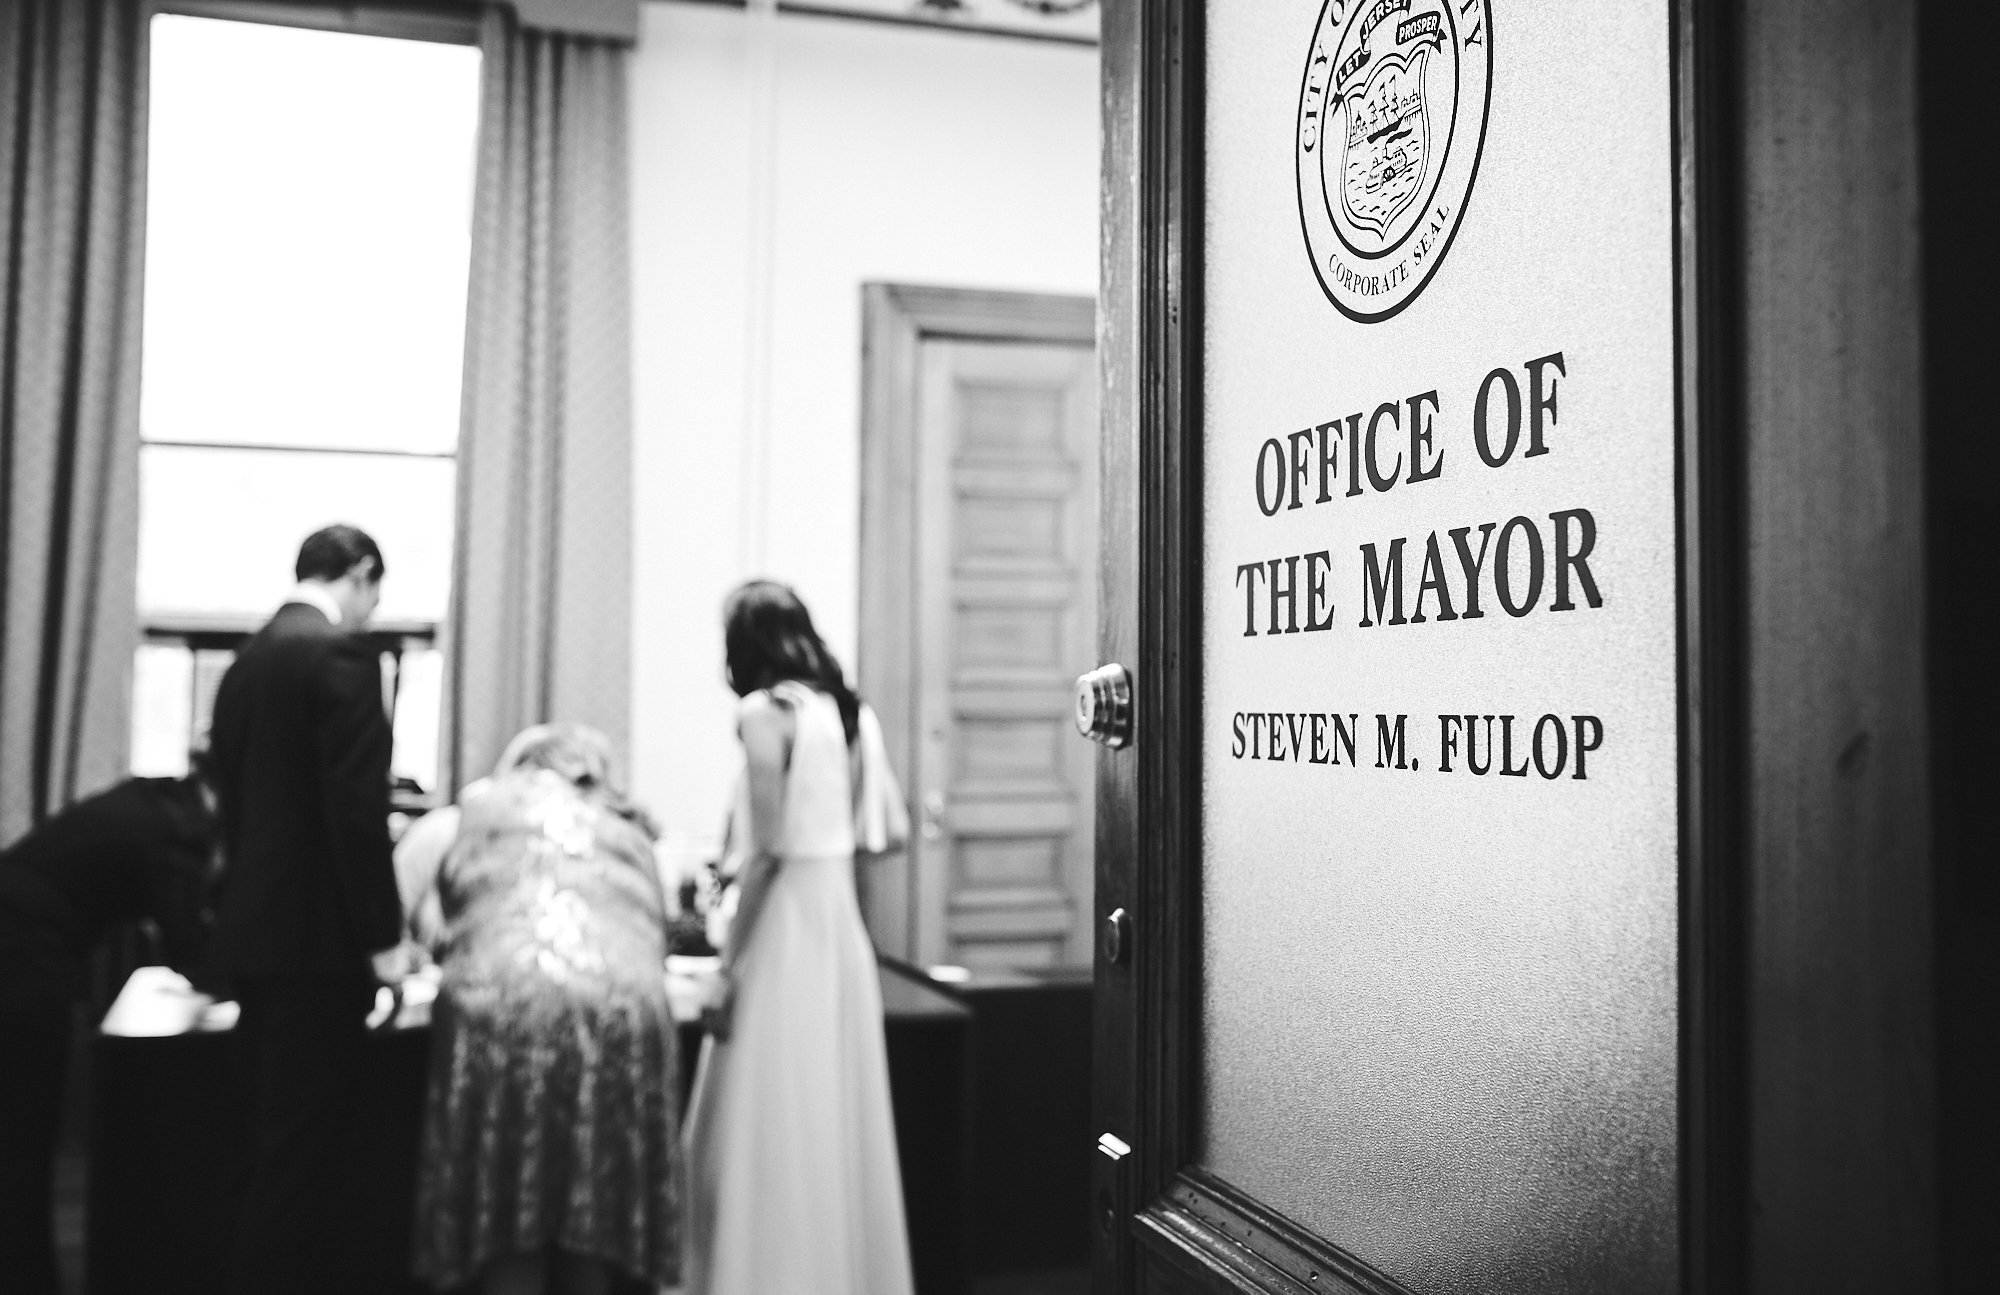 181116_JerseyCityCityHallFallWeddingPhotography_JerseyCityWeddingPhotographer_By_BriJohnsonWeddings_0055.jpg